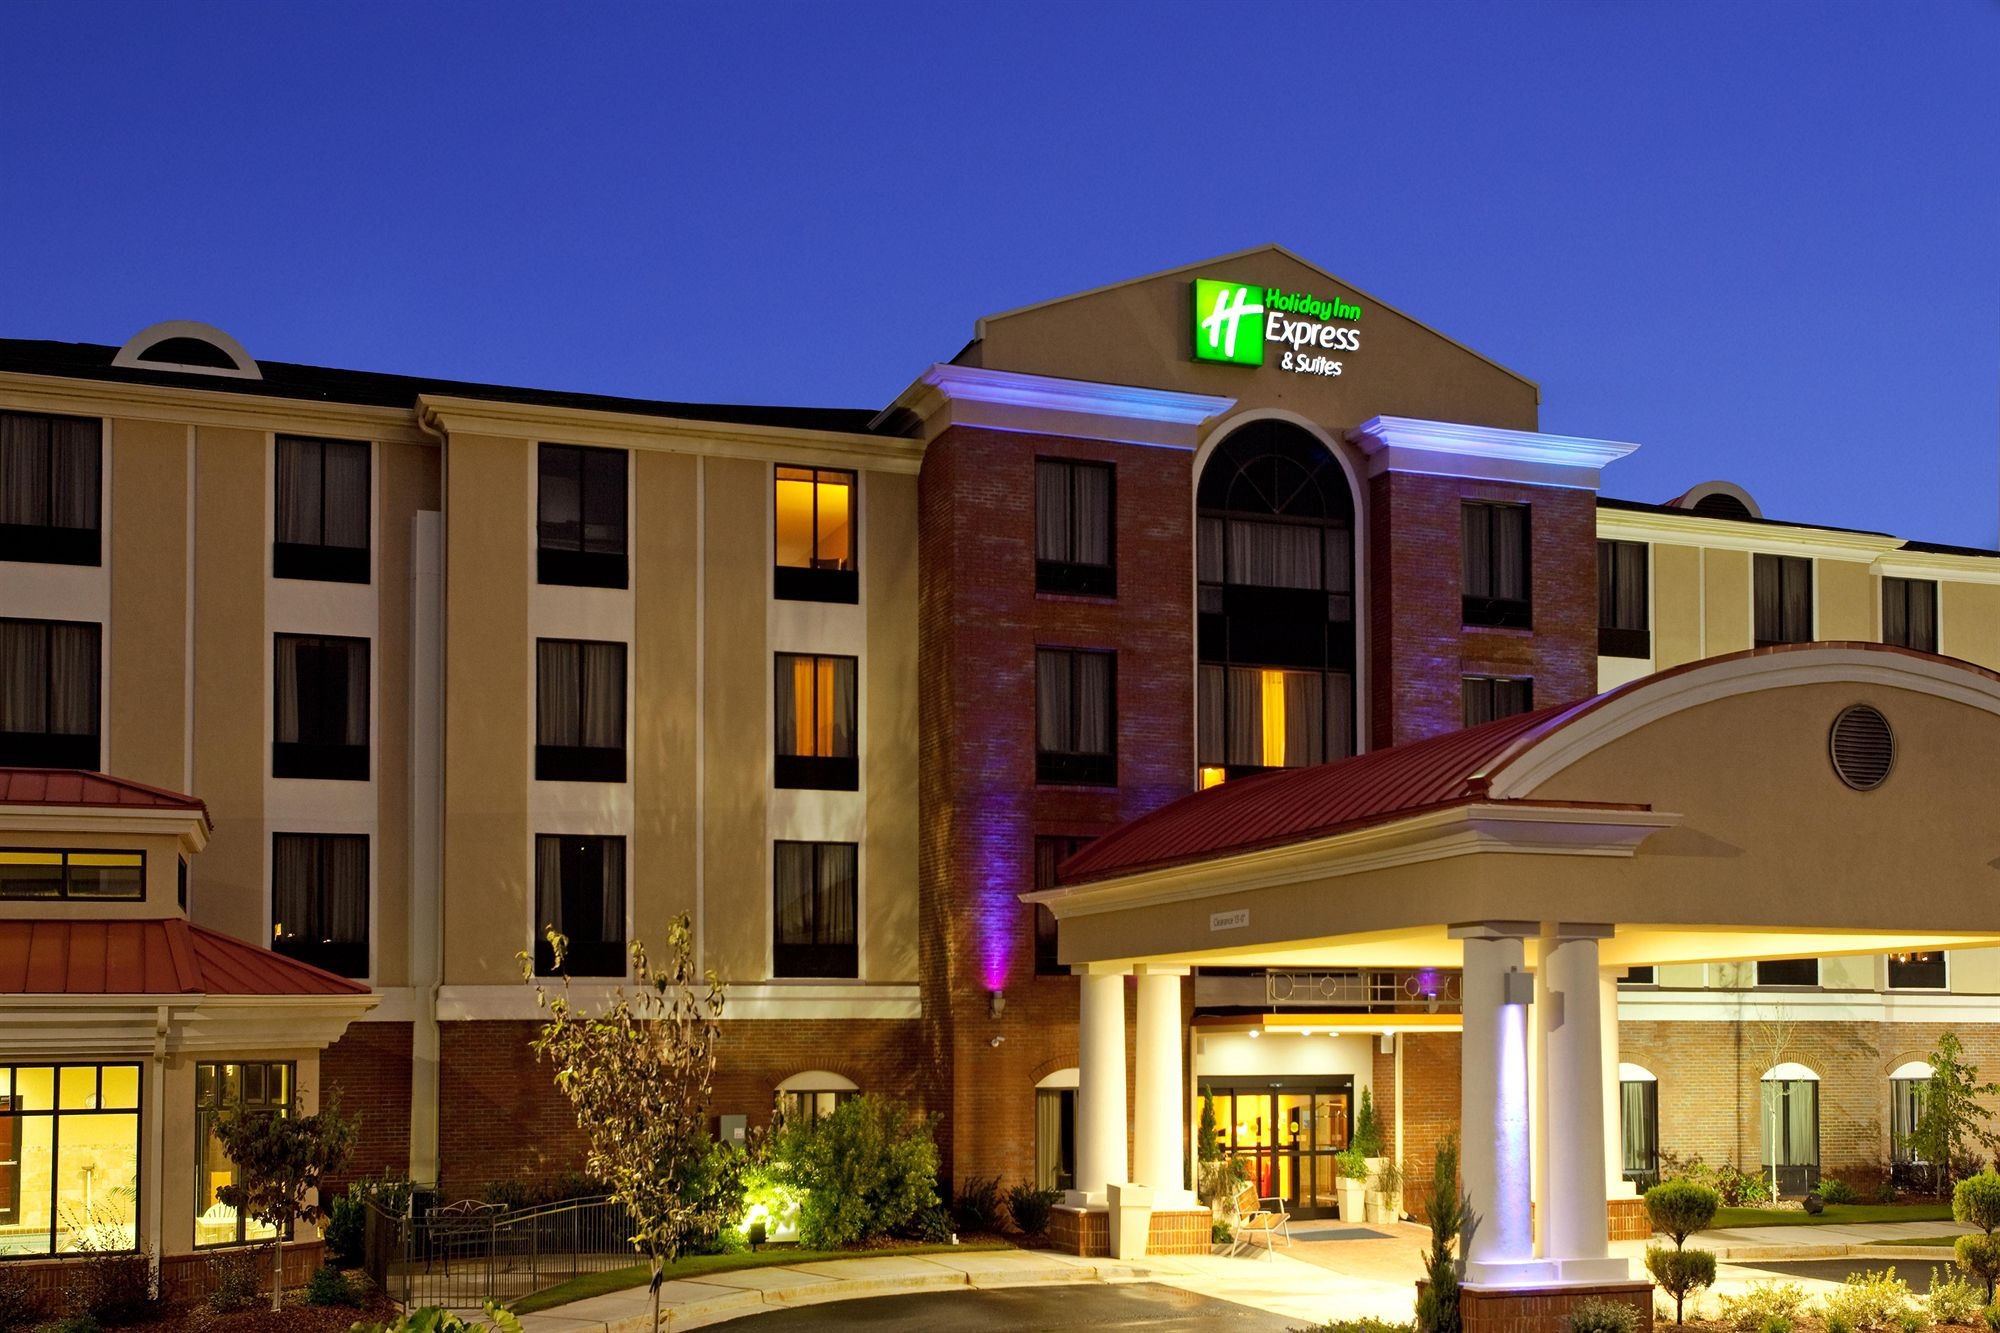 Holiday Inn Express Hotel & Suites Lavonia in Lavonia, GA